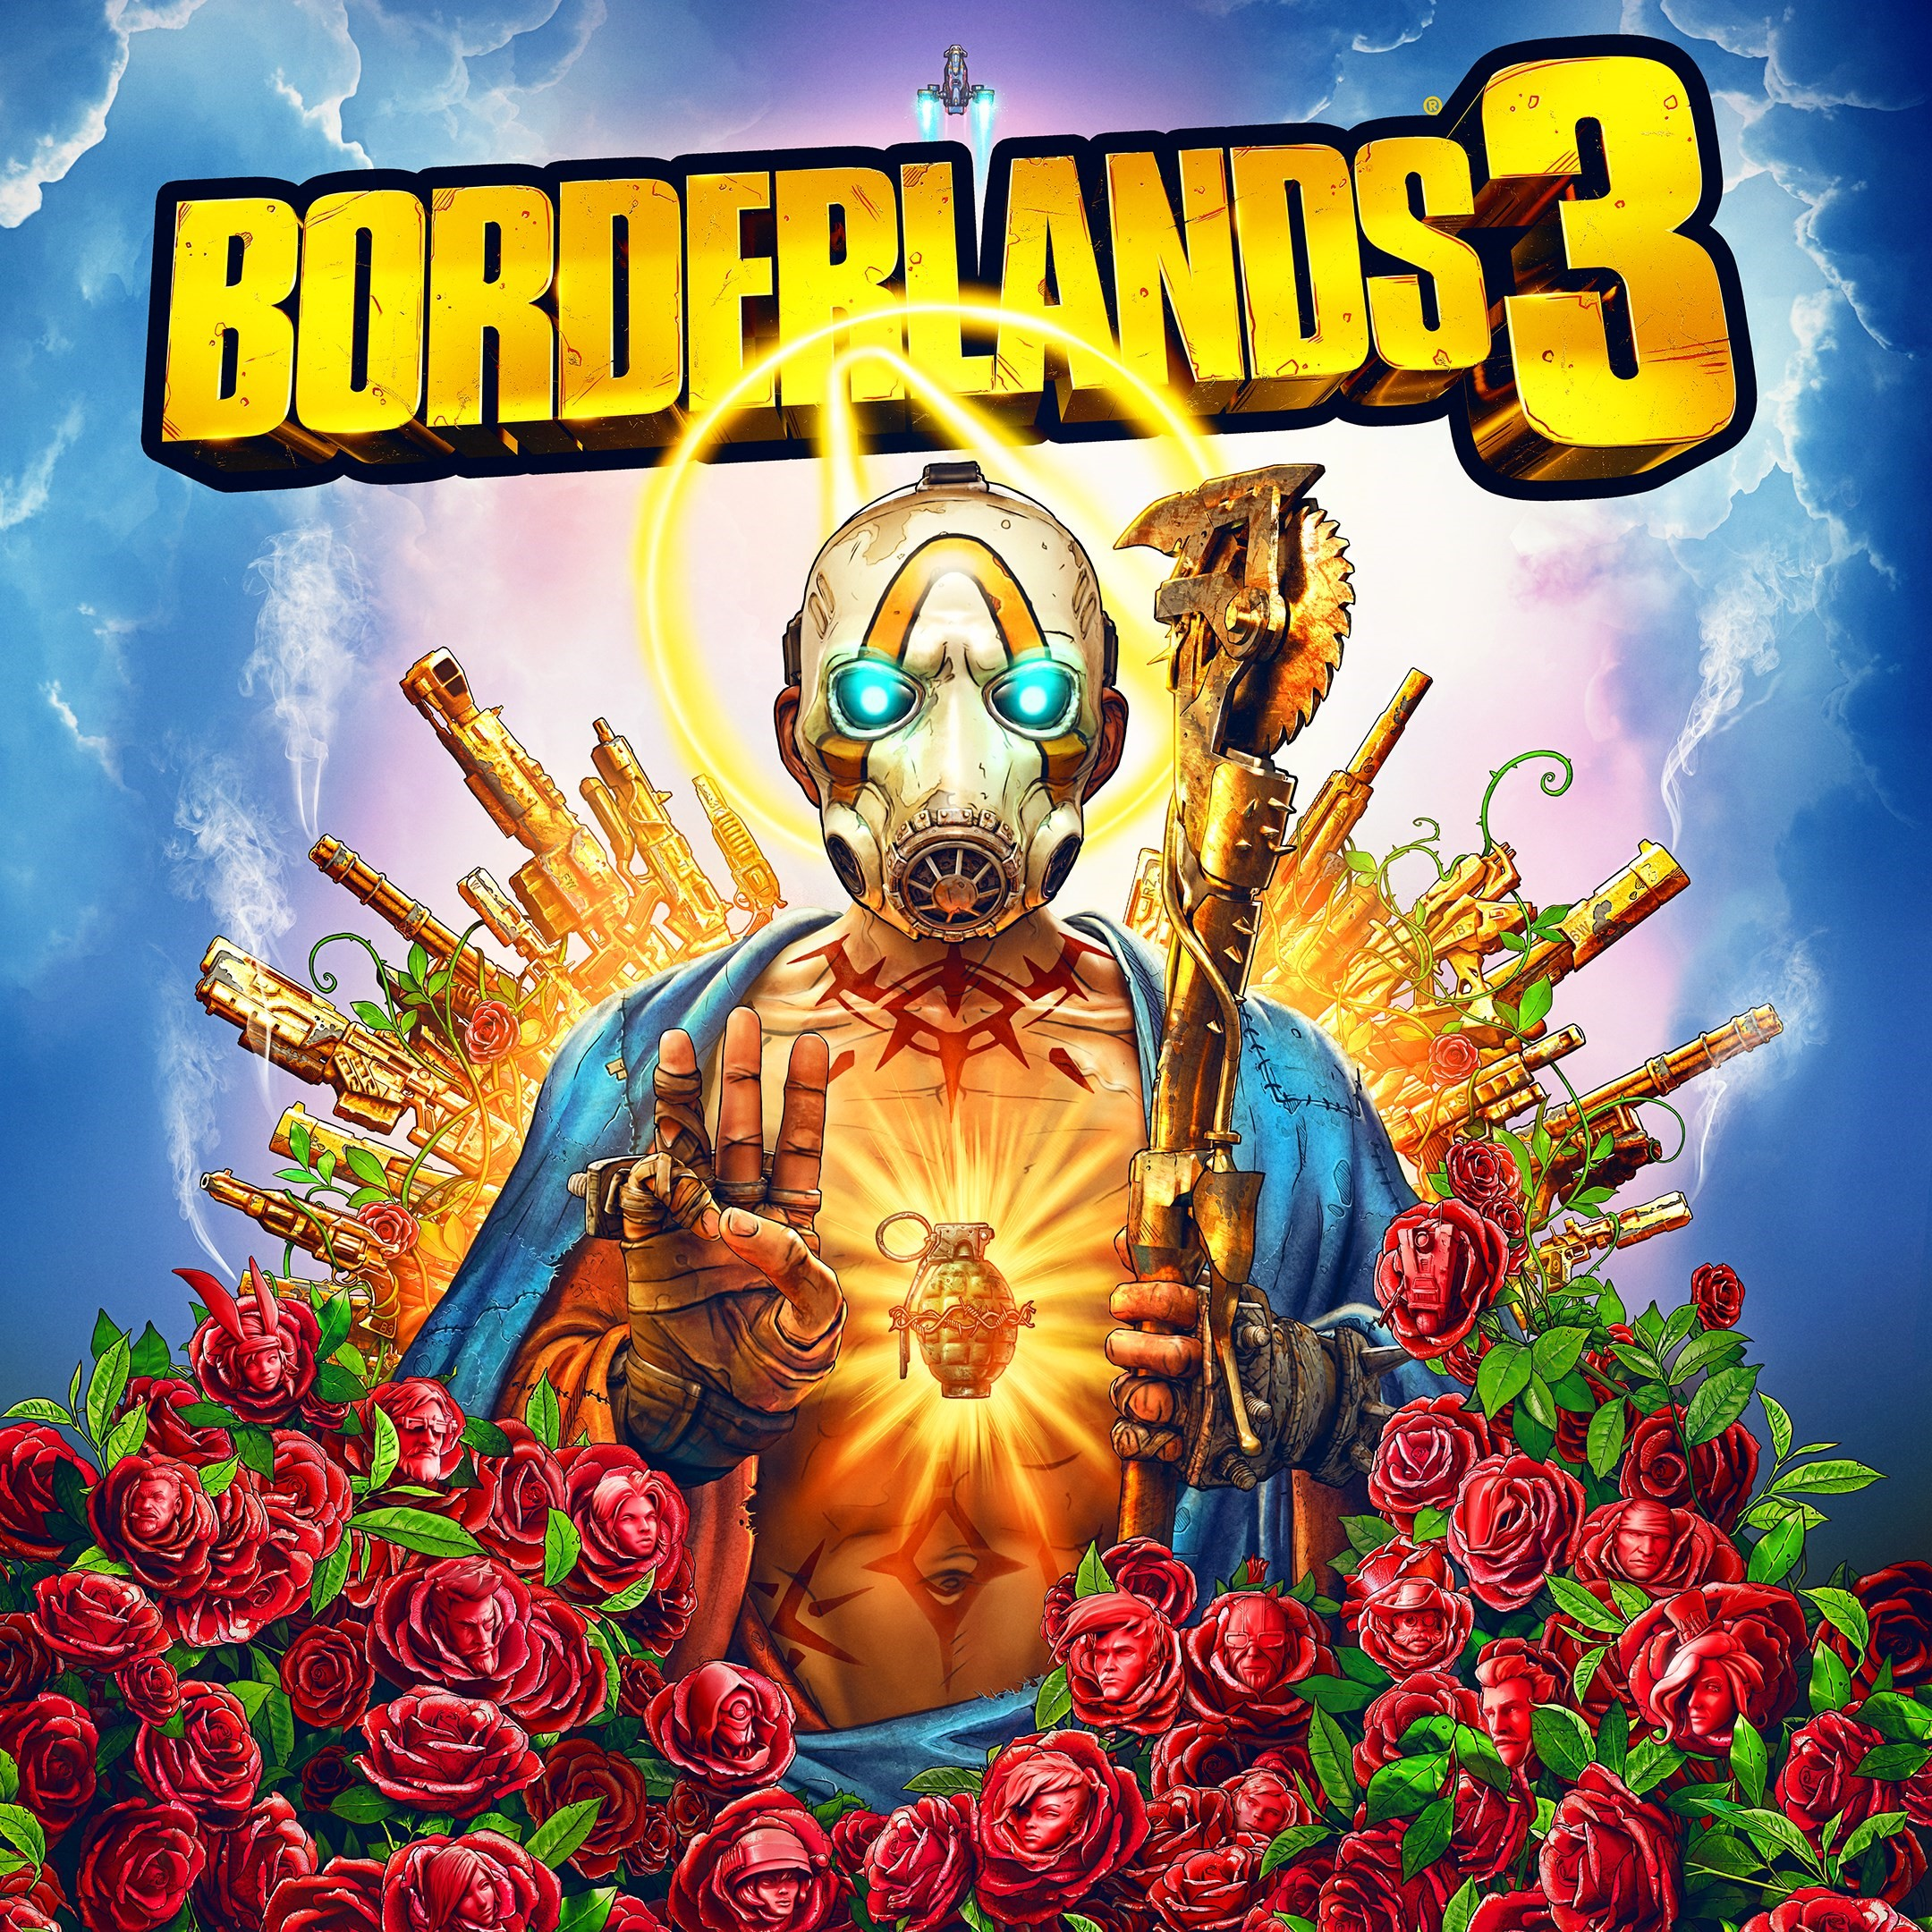 Borderlands 3 Super Deluxe (Epic Games) Autoactivate